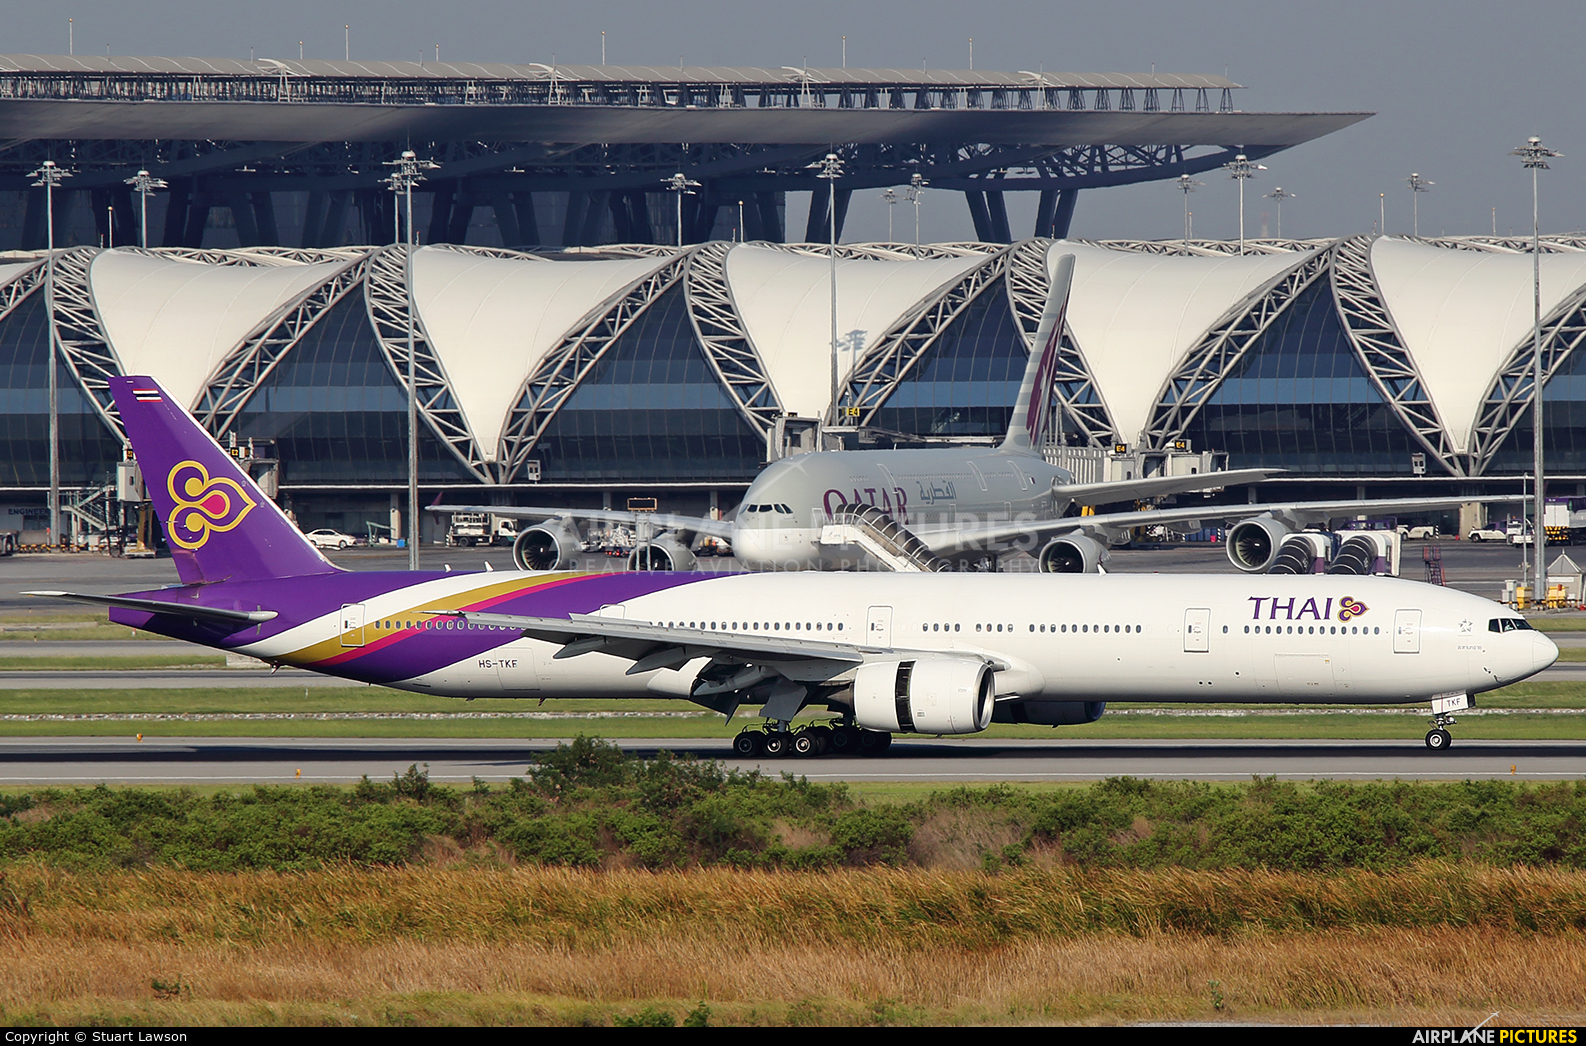 Thai Airways HS-TKF aircraft at Bangkok - Suvarnabhumi